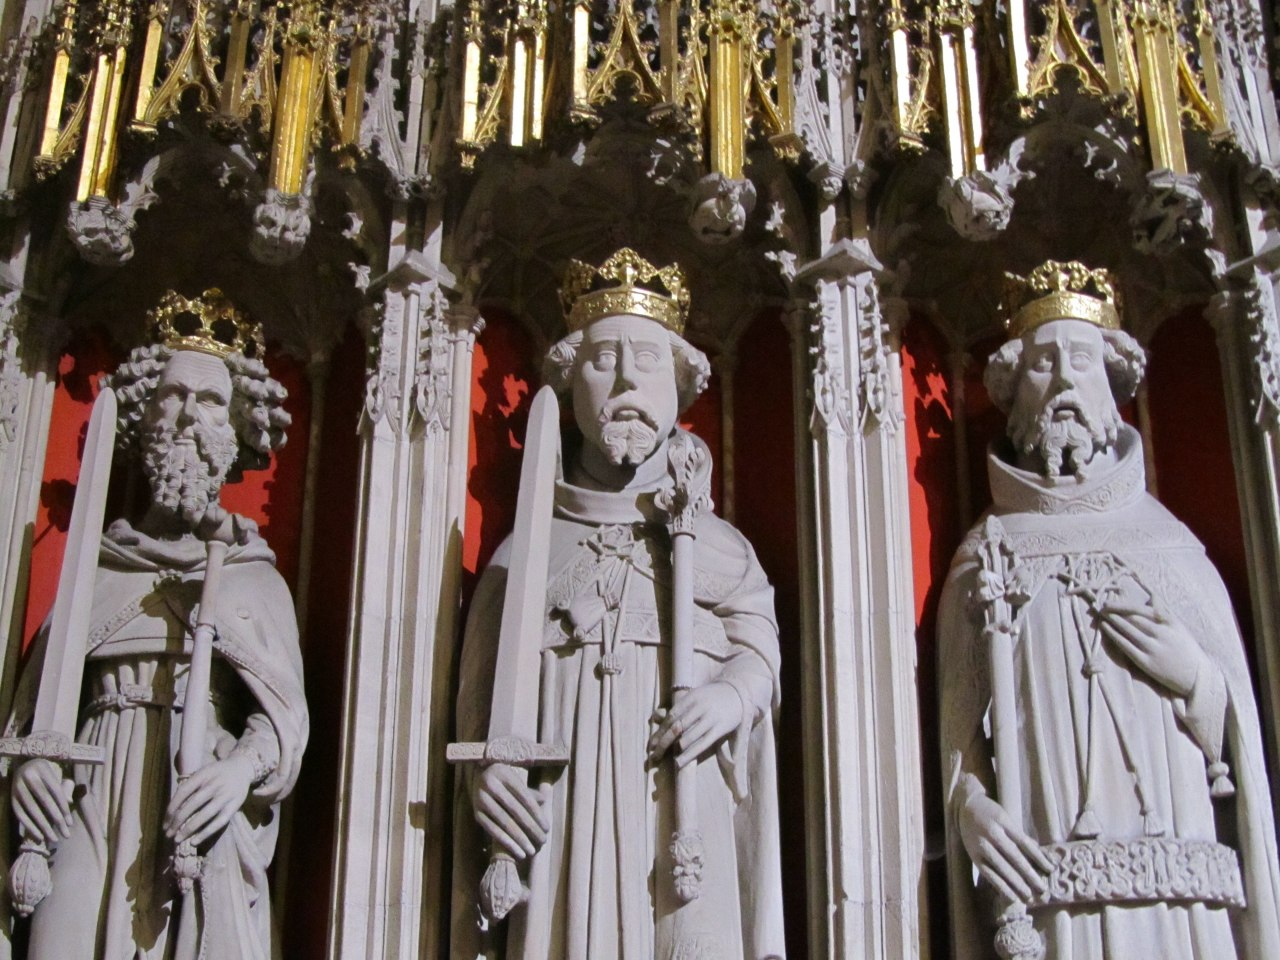 Kings, York Minster